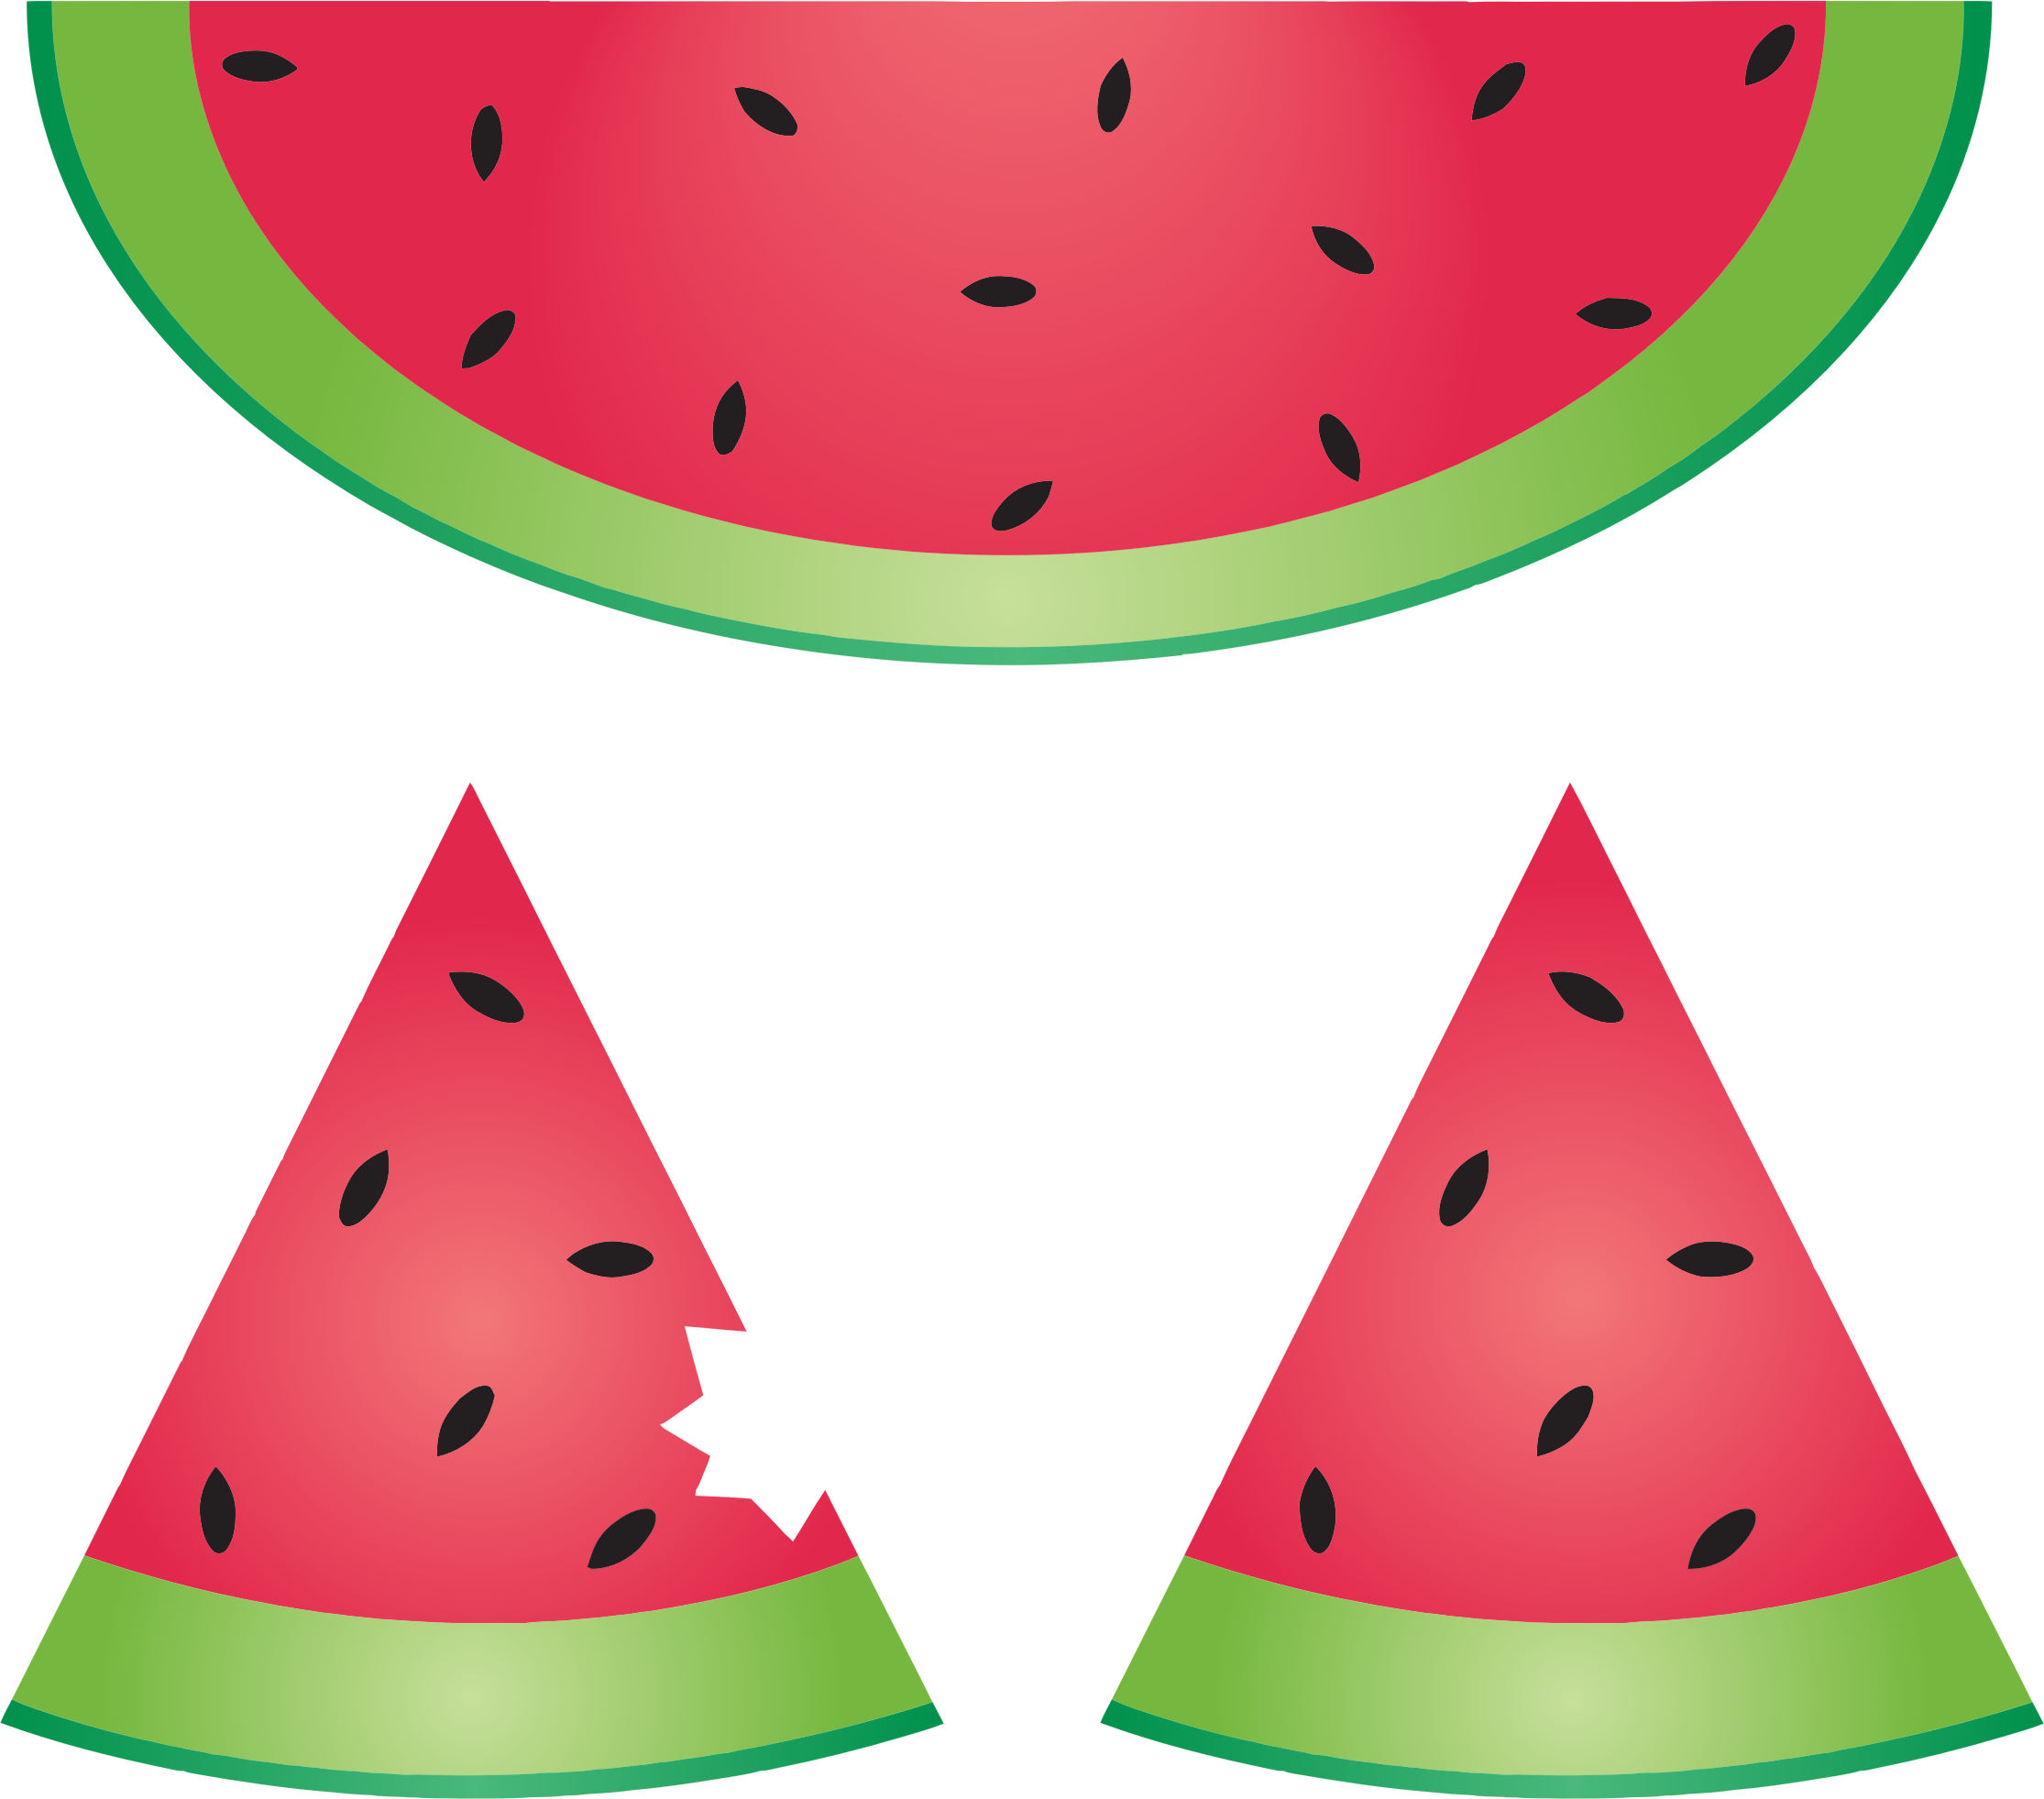 Watermelon by GDJ